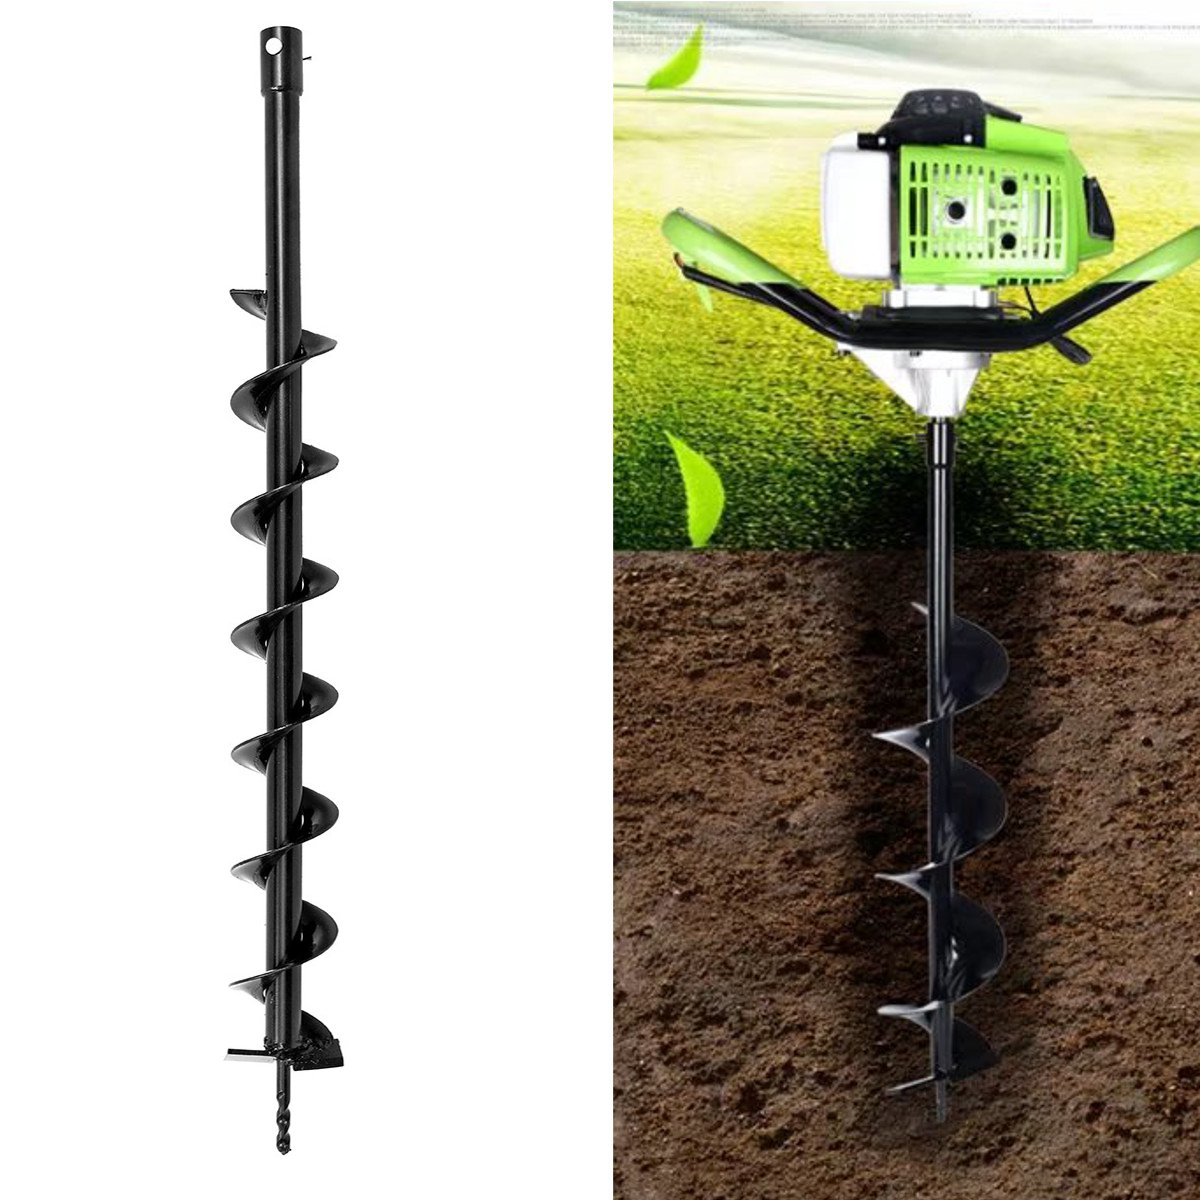 800mmX80mm Auger Drill Bit Hole Digger Earth Auger Garden Petrol Post Hole Digger Tool Ground Drill Machine Tools Accessories|Drill Bits| |  - title=